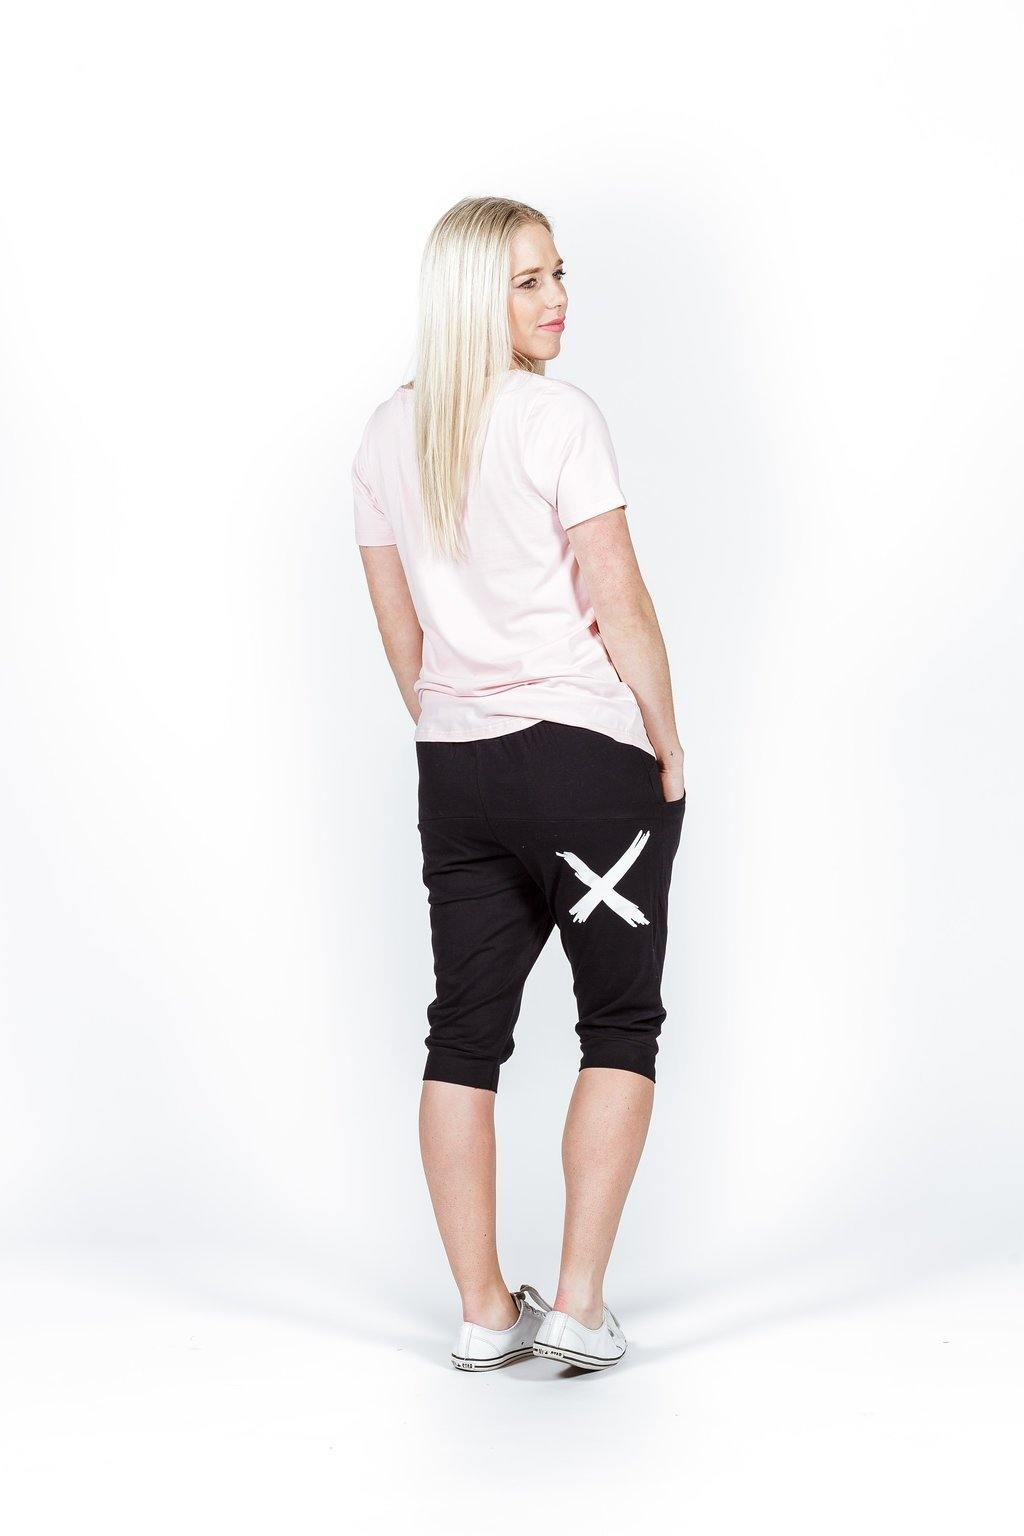 Apartment Pants- 3/4 White Cross